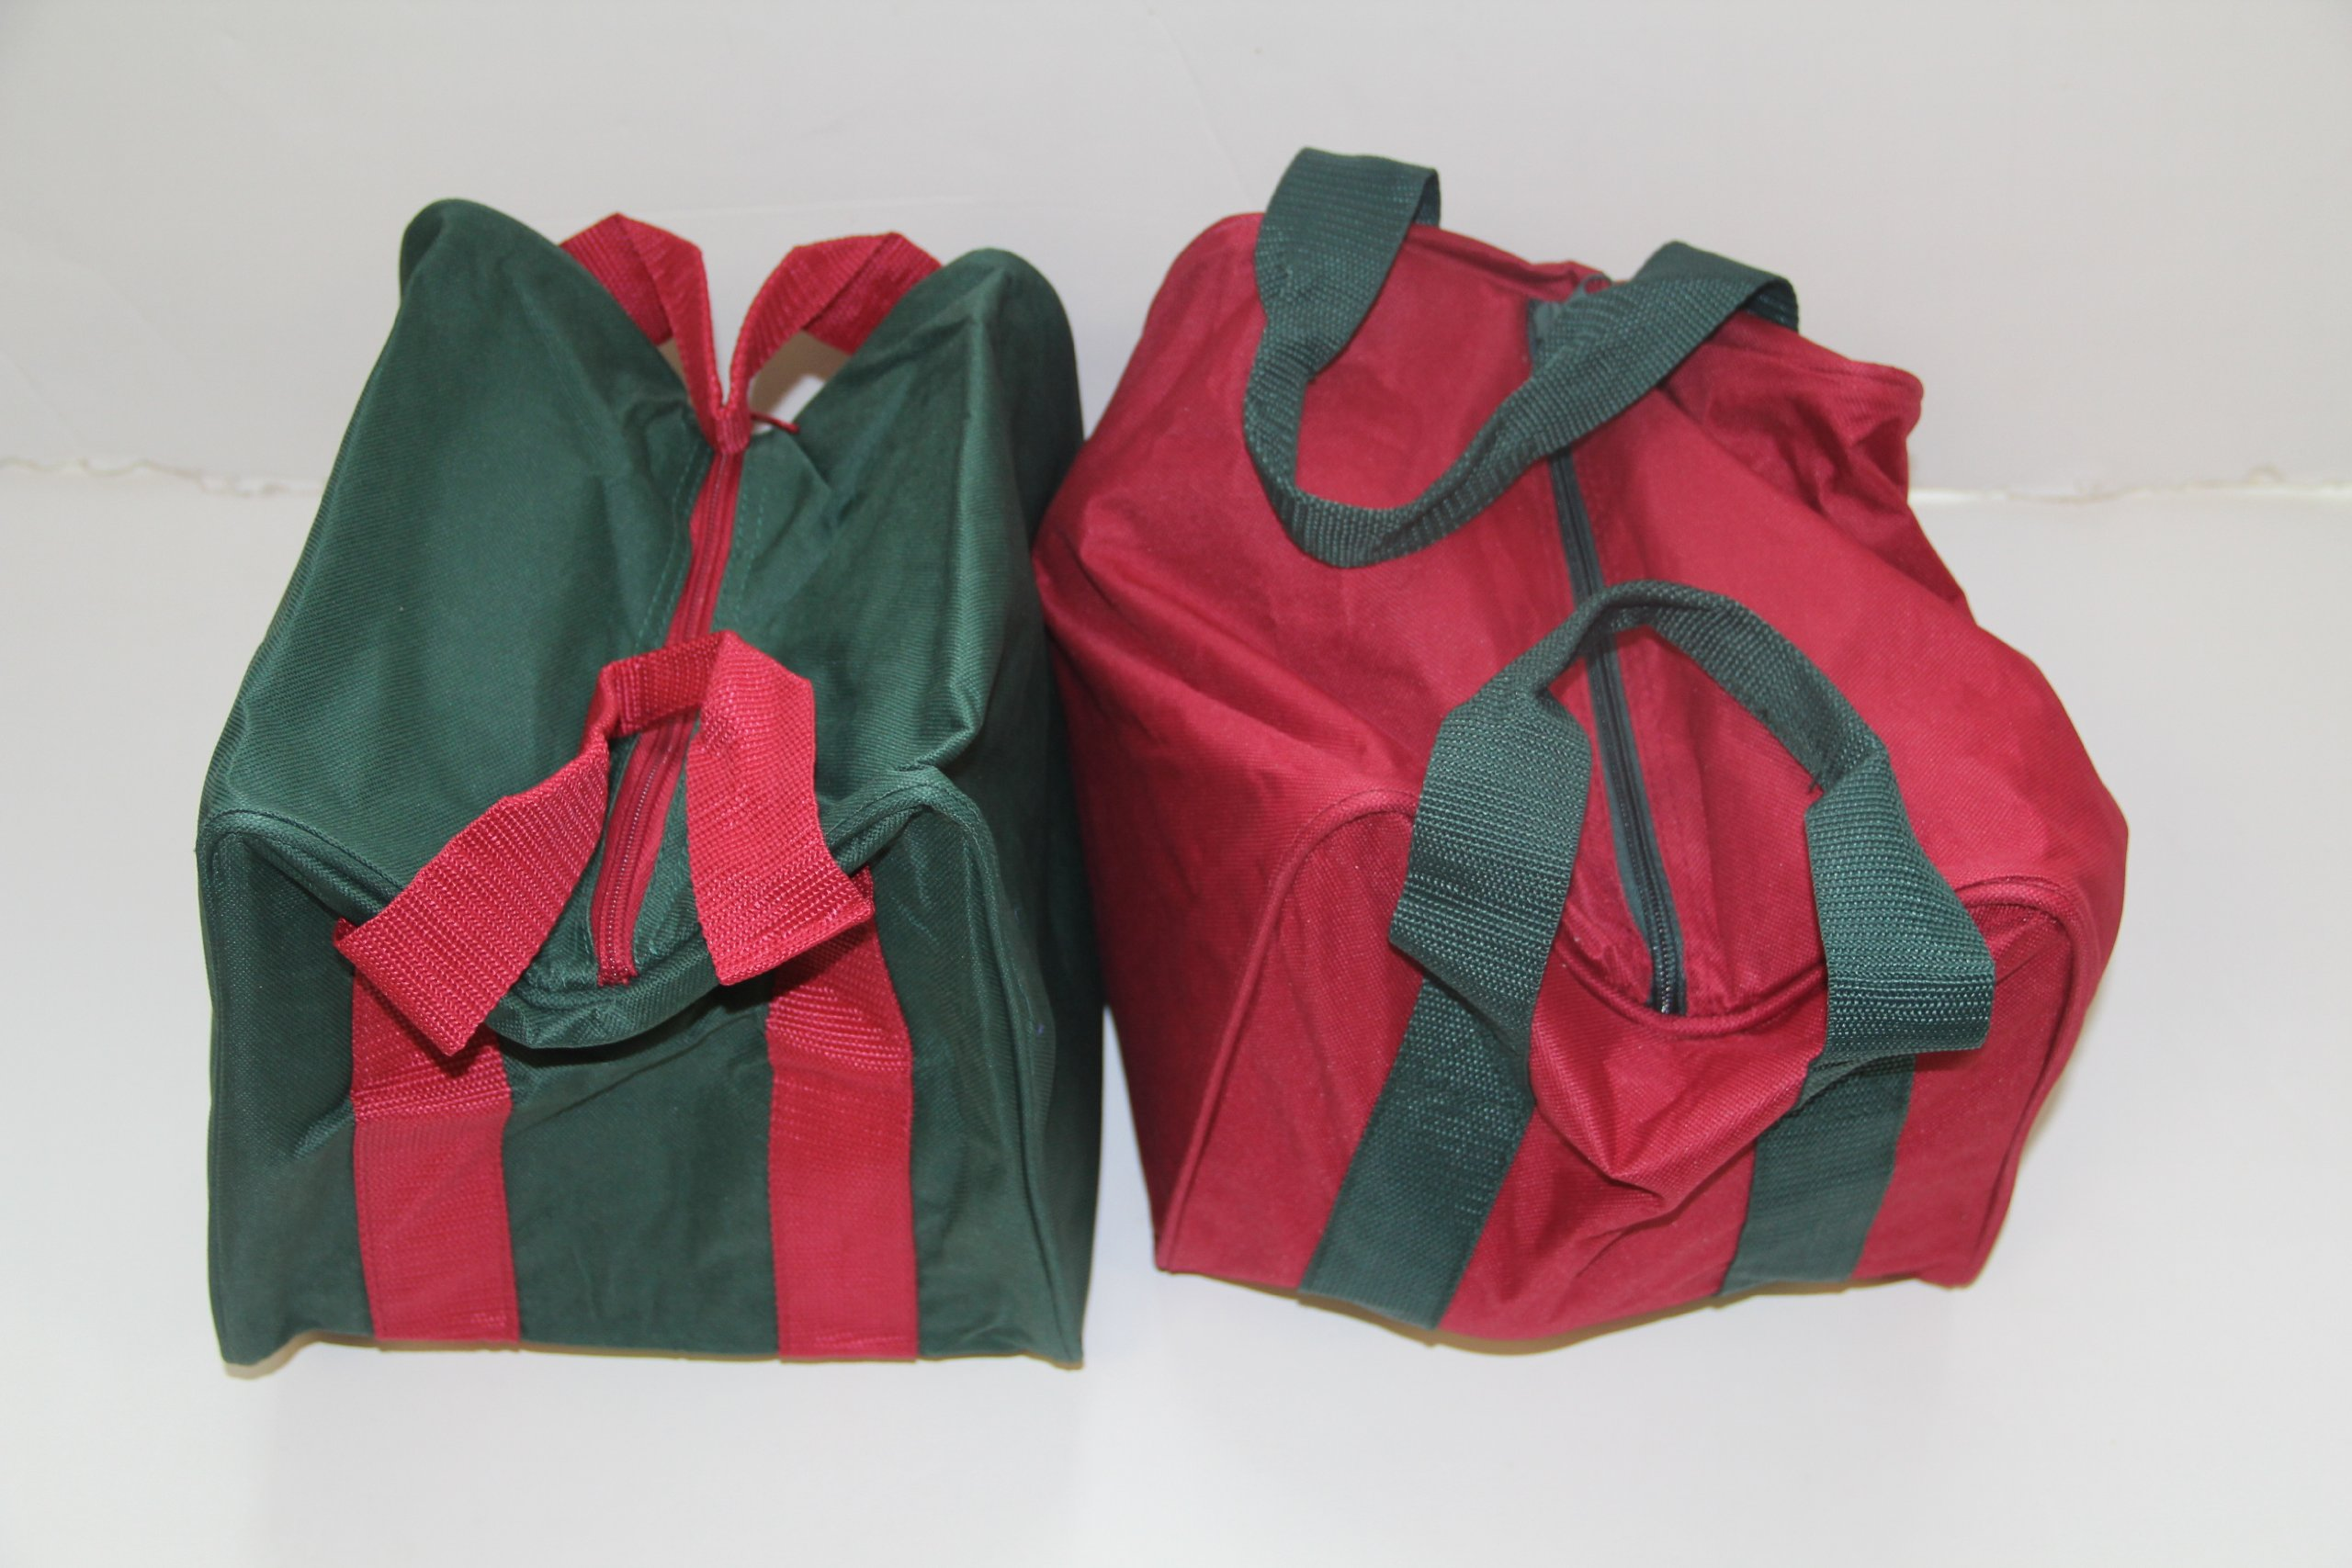 Heavy Duty 8 Ball Bocce Bag by EPCO - red and green bags -2 pack by BuyBocceBalls